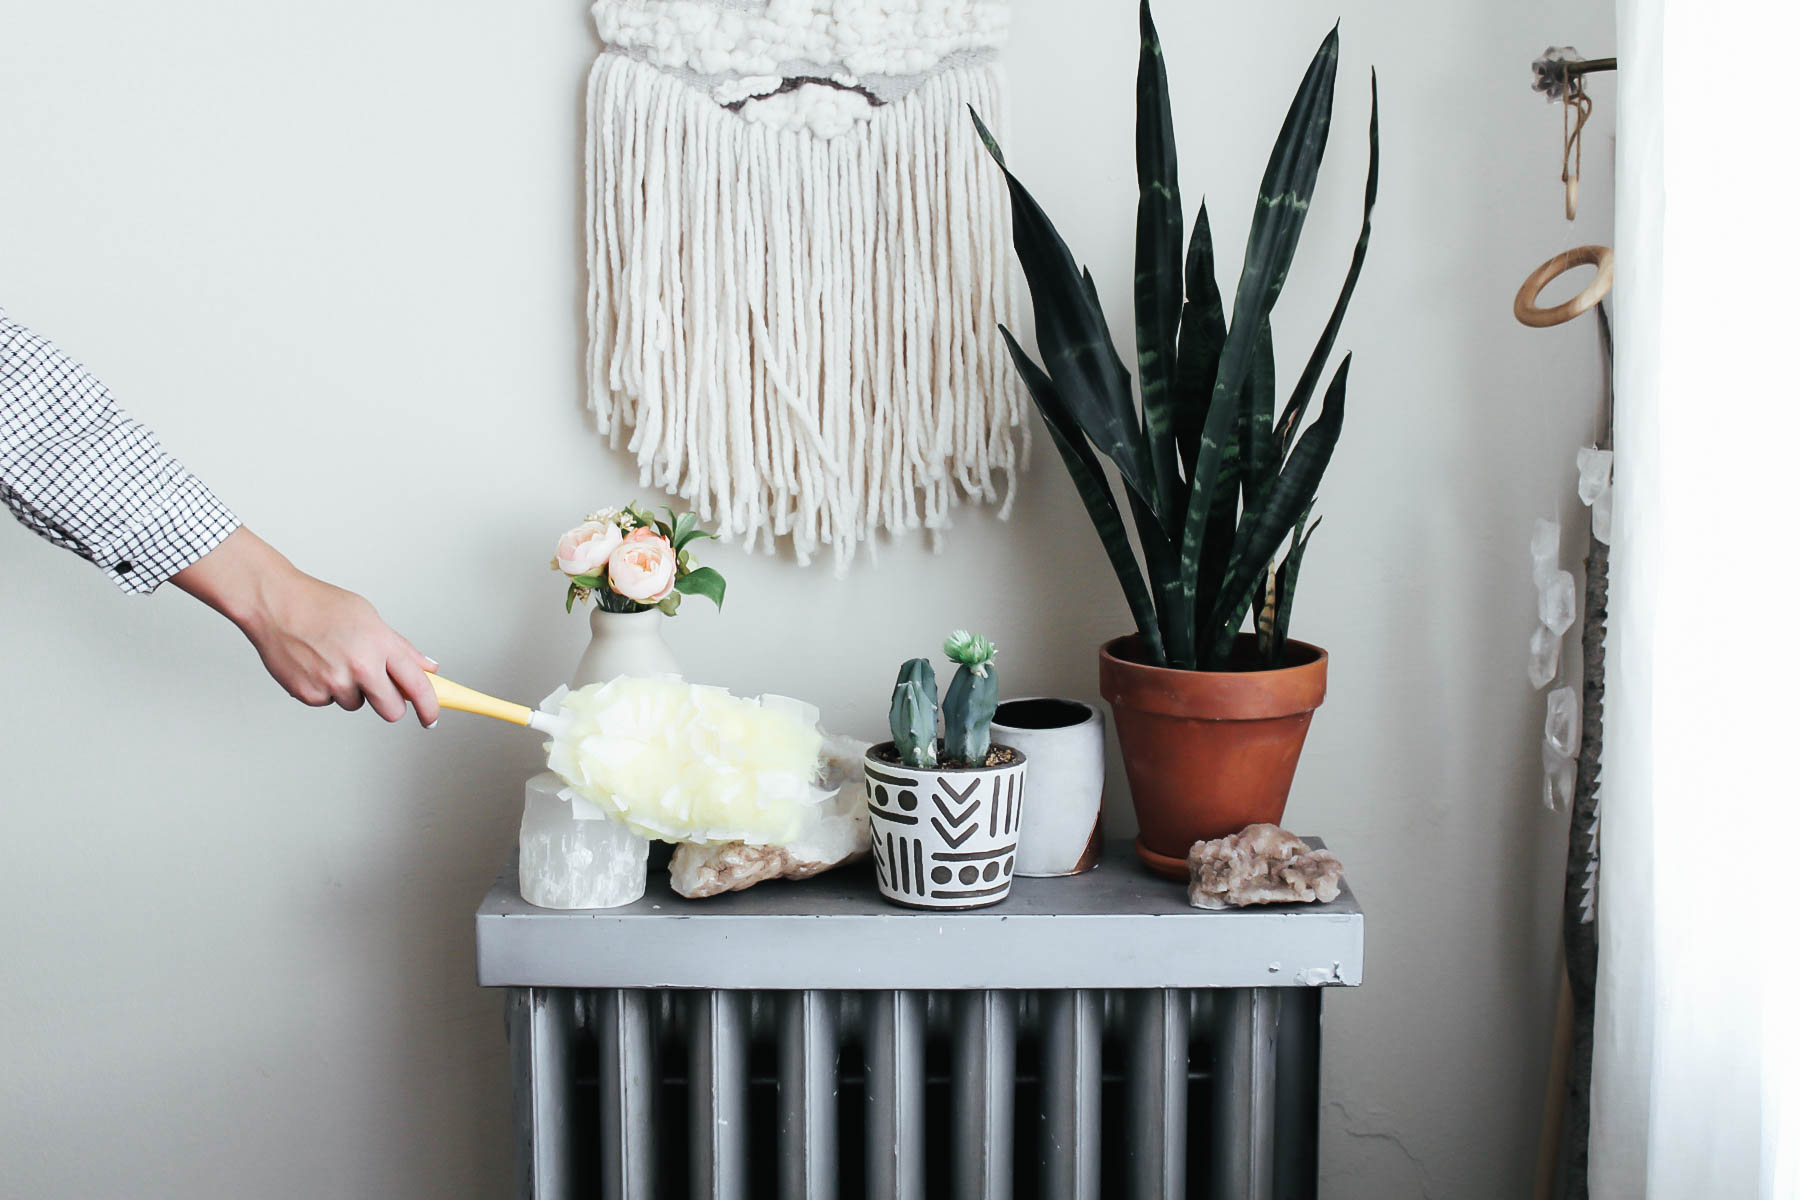 Pretend You're a Real Adult with These Easy Cleaning Tips